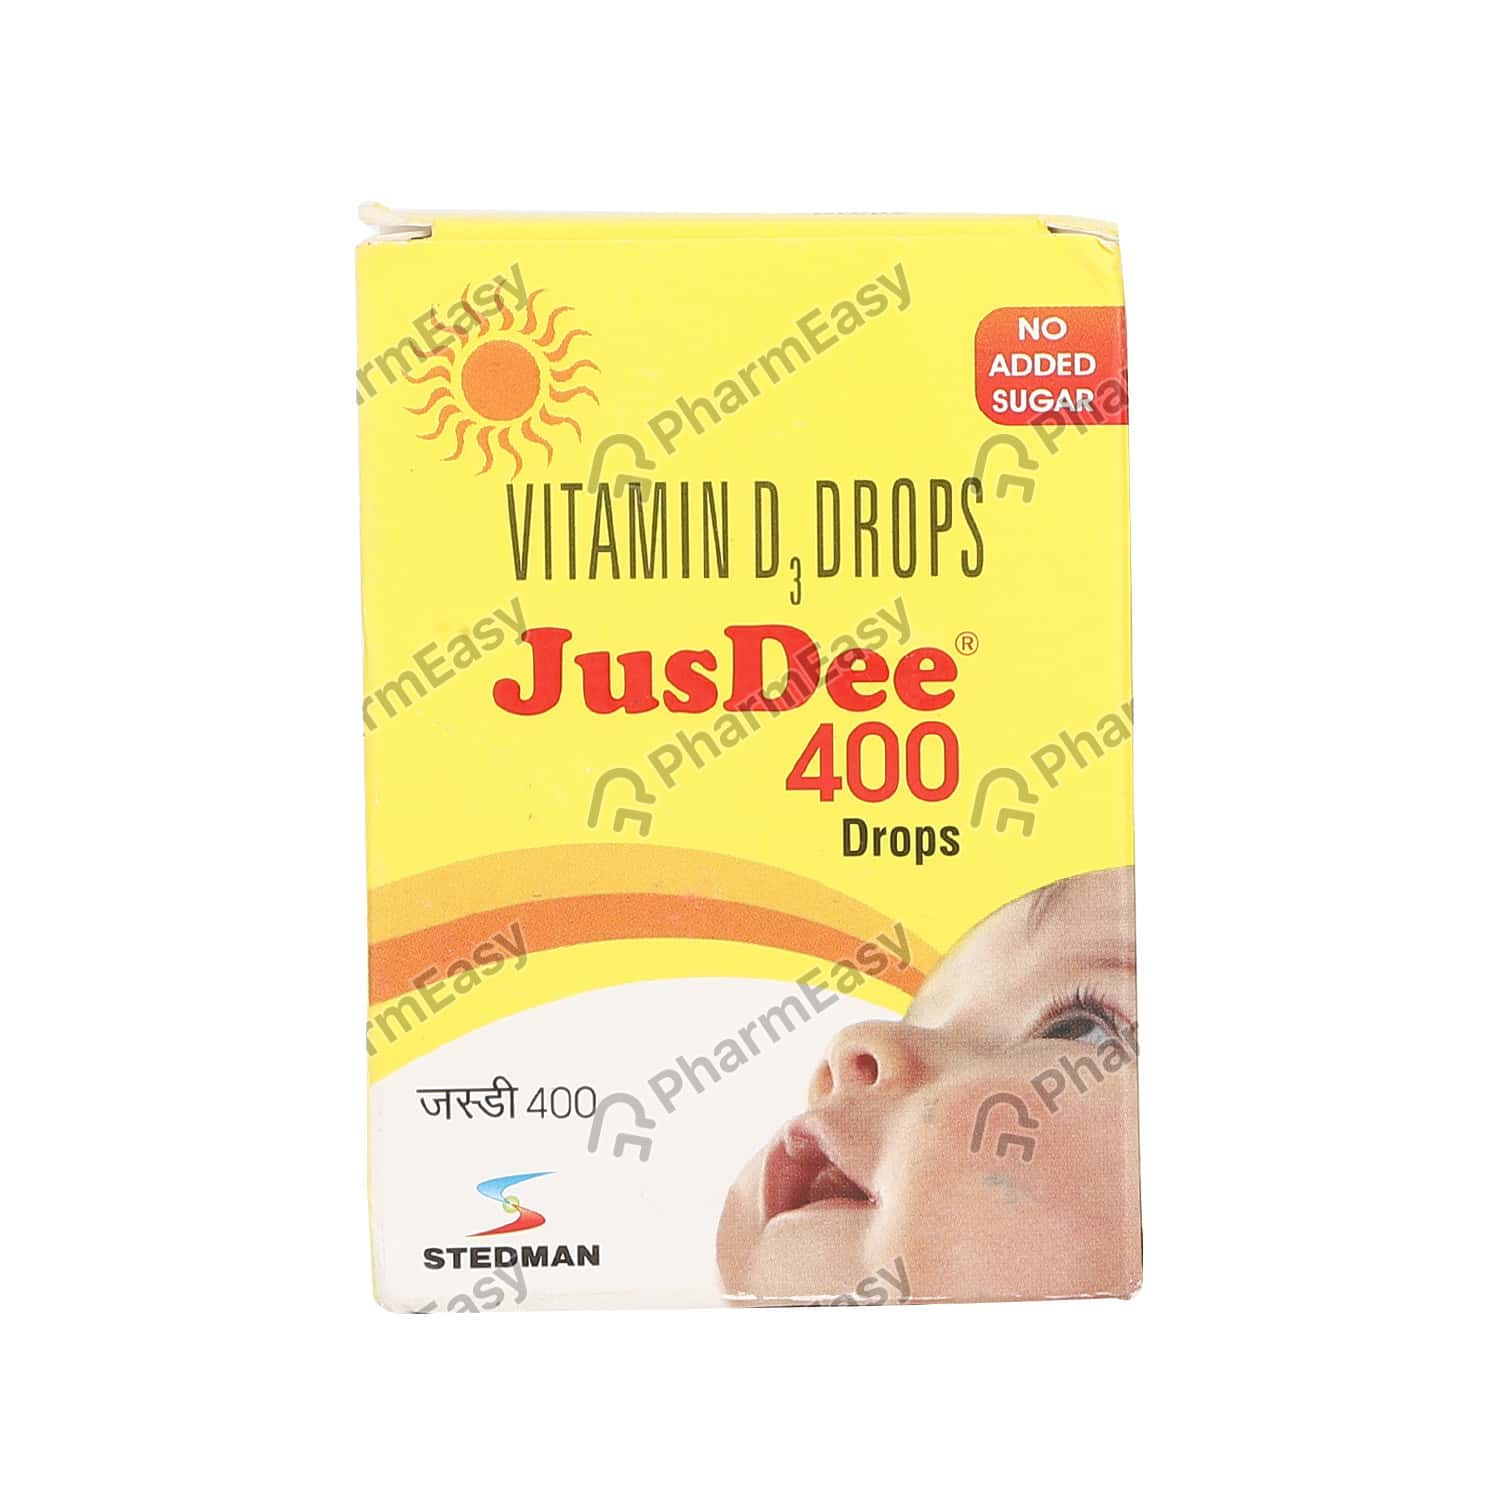 Jusdee 400iu Drops 30ml